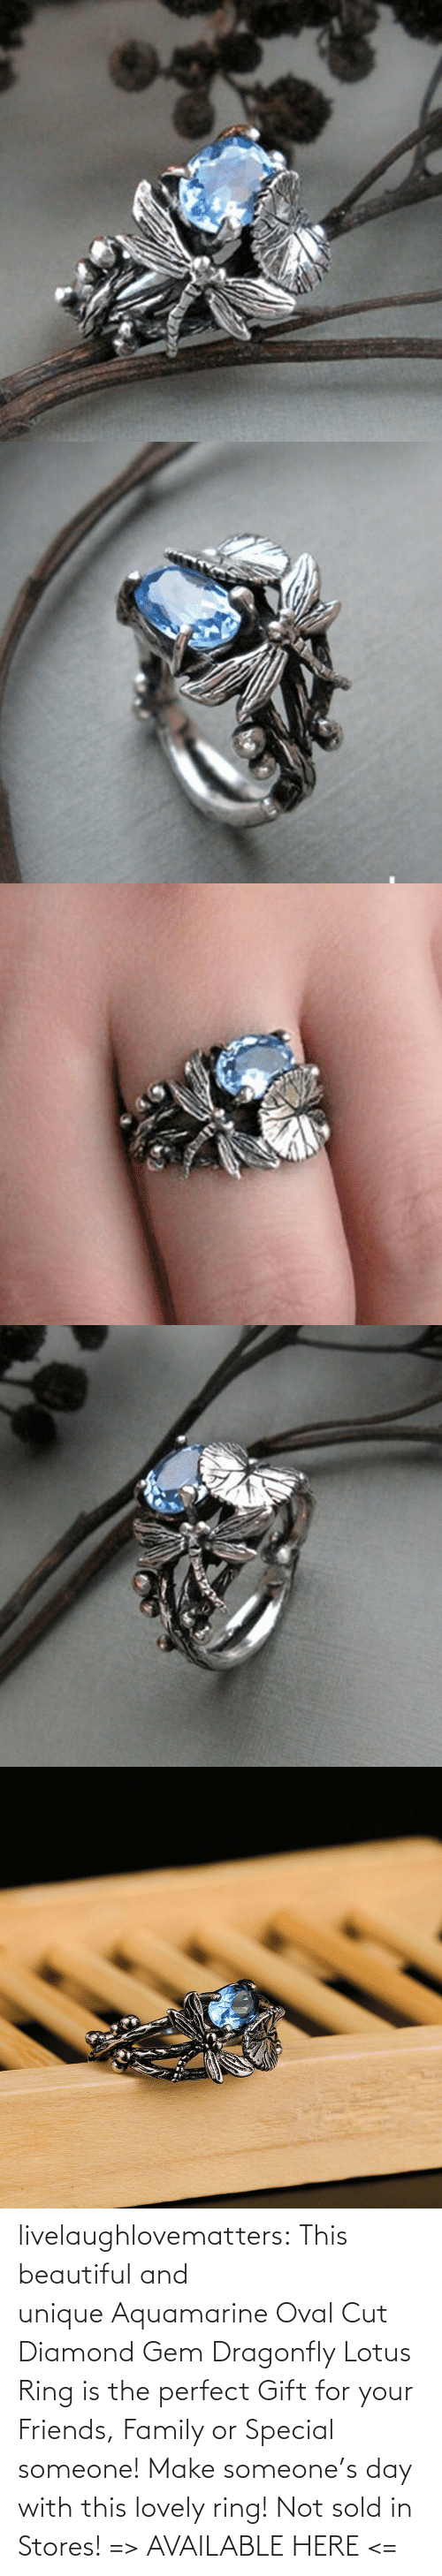 Sold: livelaughlovematters: This beautiful and unique Aquamarine Oval Cut Diamond Gem Dragonfly Lotus Ring is the perfect Gift for your Friends, Family or Special someone! Make someone's day with this lovely ring! Not sold in Stores! => AVAILABLE HERE <=